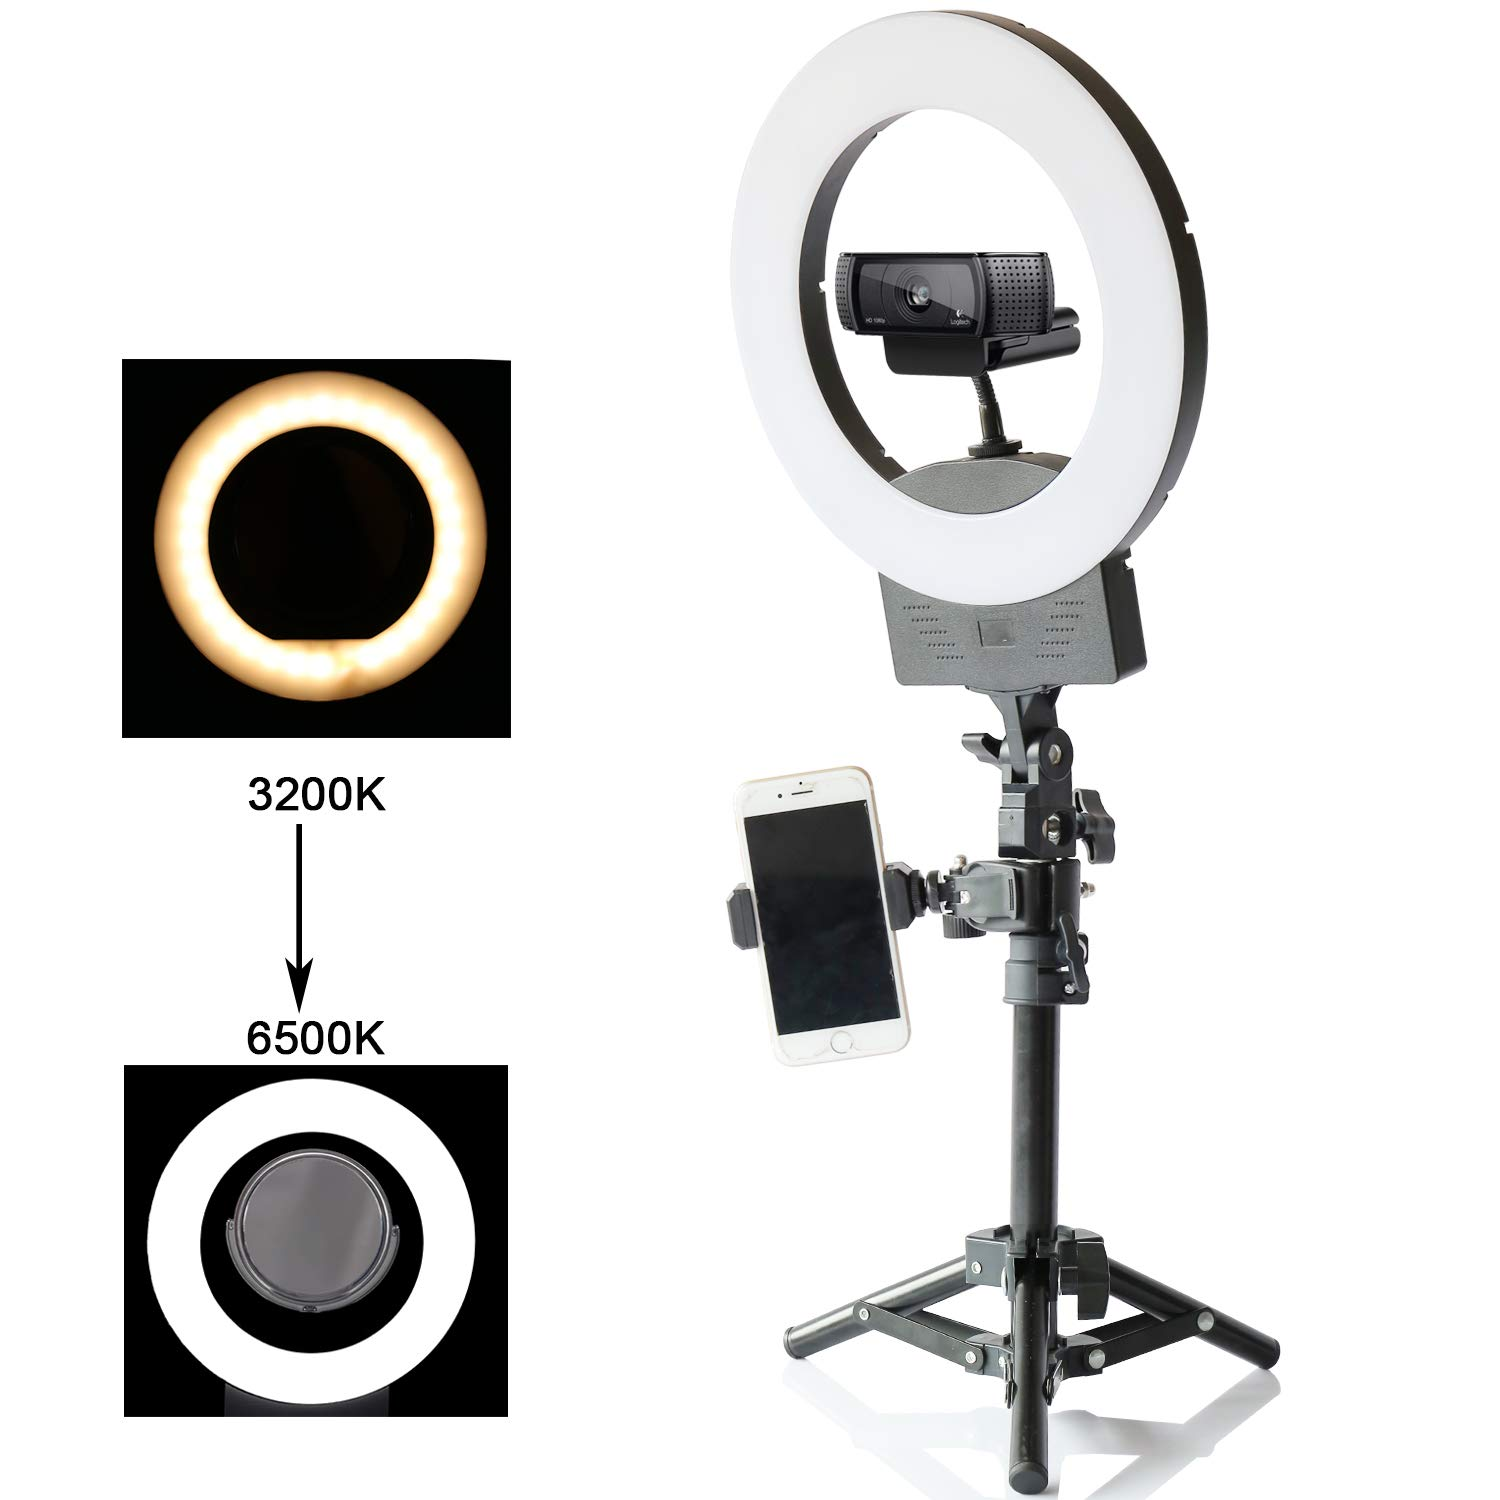 10'' Selfie Ring Light 3200K-6500K for Webcam YouTube Video and Makeup,Dimmable LED Camera Light with Adjustable Tripod Stand,Mirror Cell Phone Holder Desktop LED Lamp by Konseen